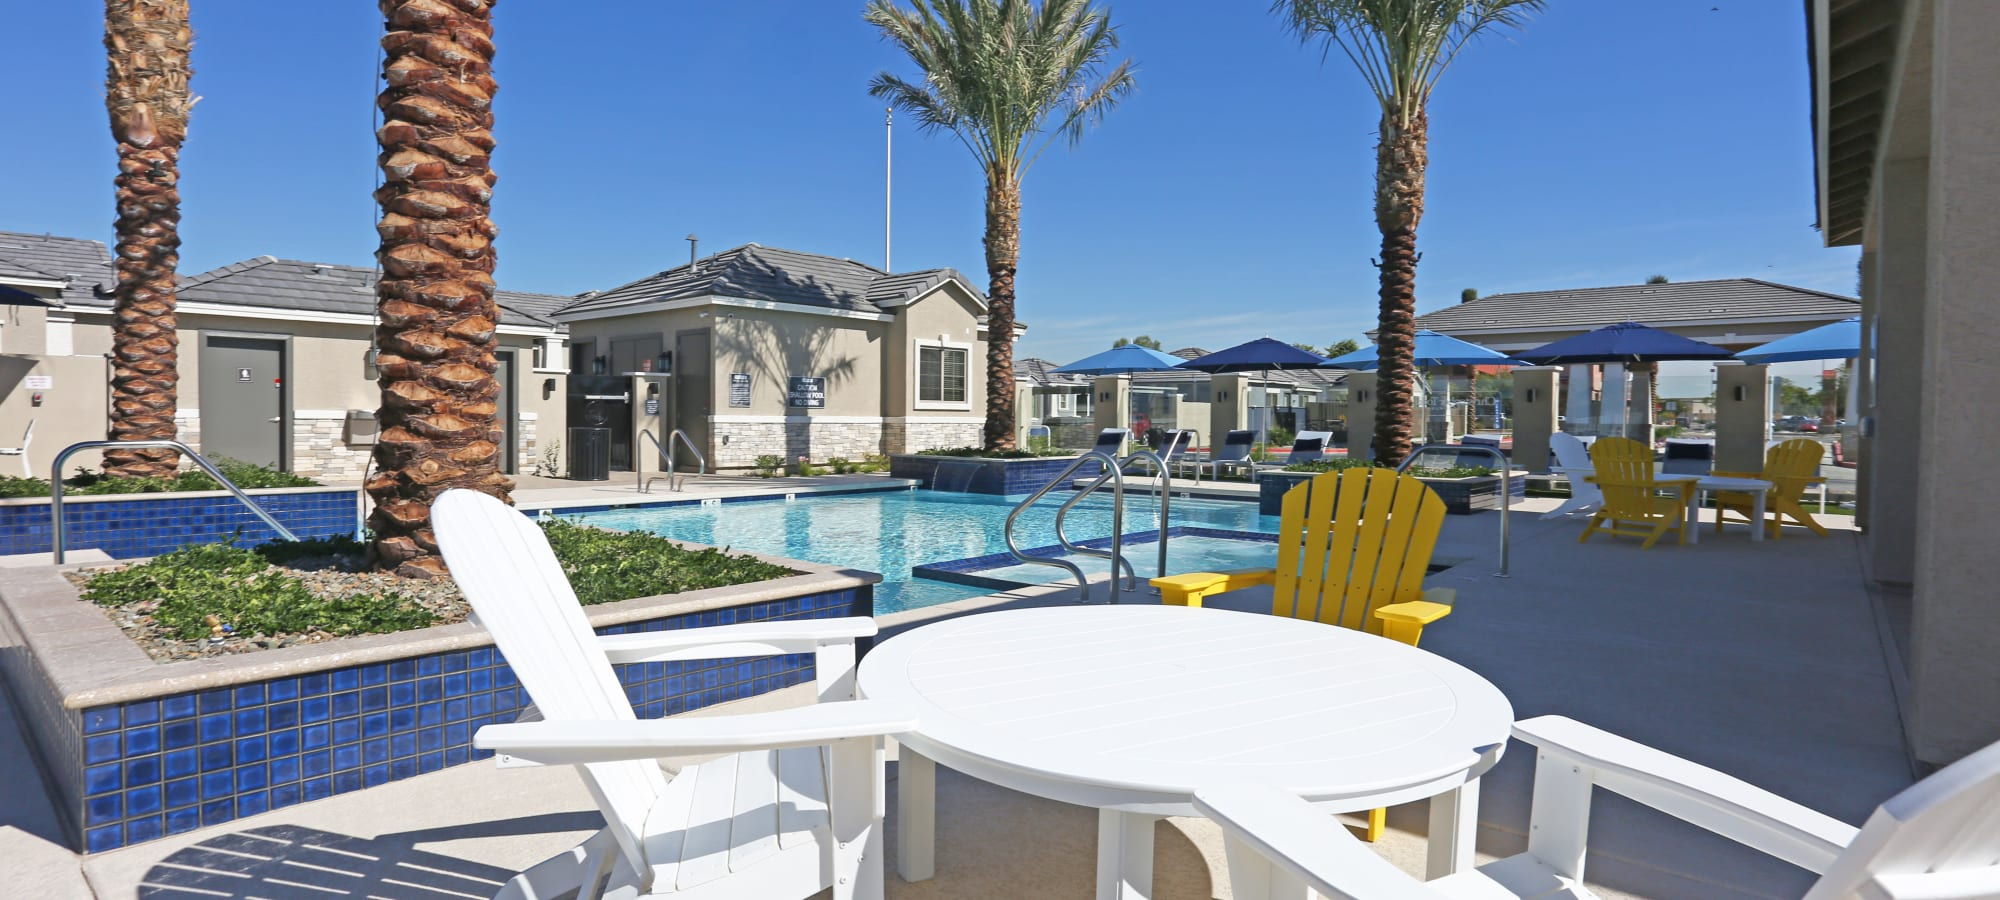 Comfortable seating near the pool at Christopher Todd Communities At Estrella Commons in Goodyear, Arizona